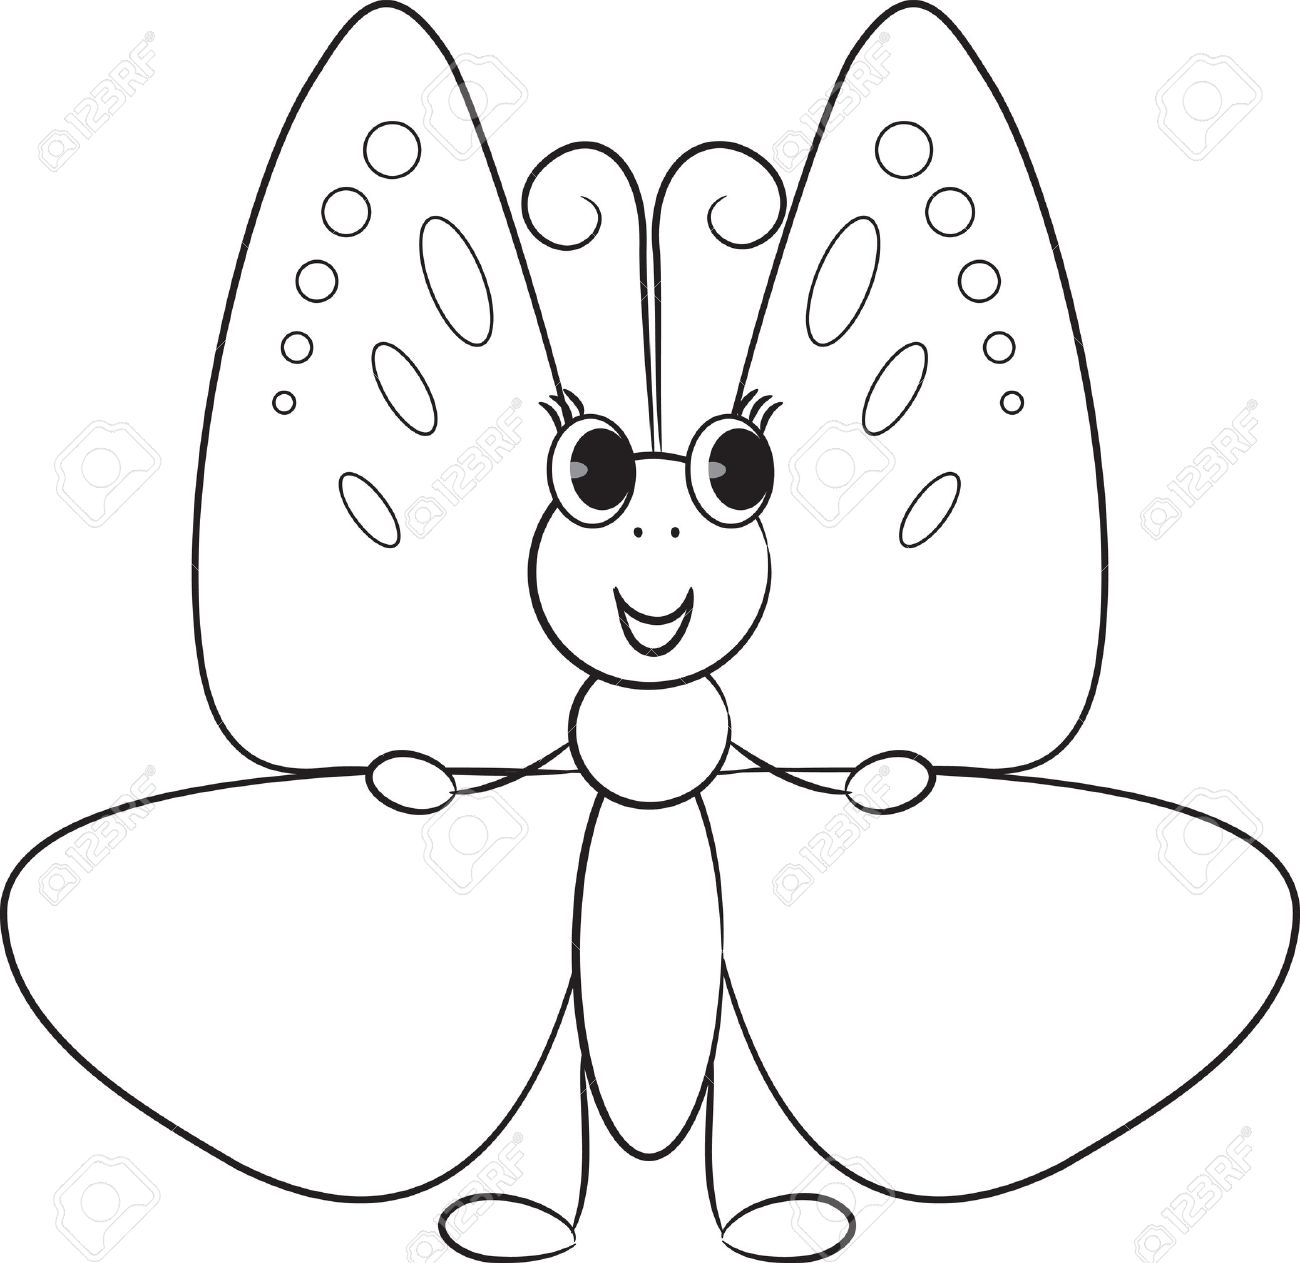 Cute cartoon butterfly.